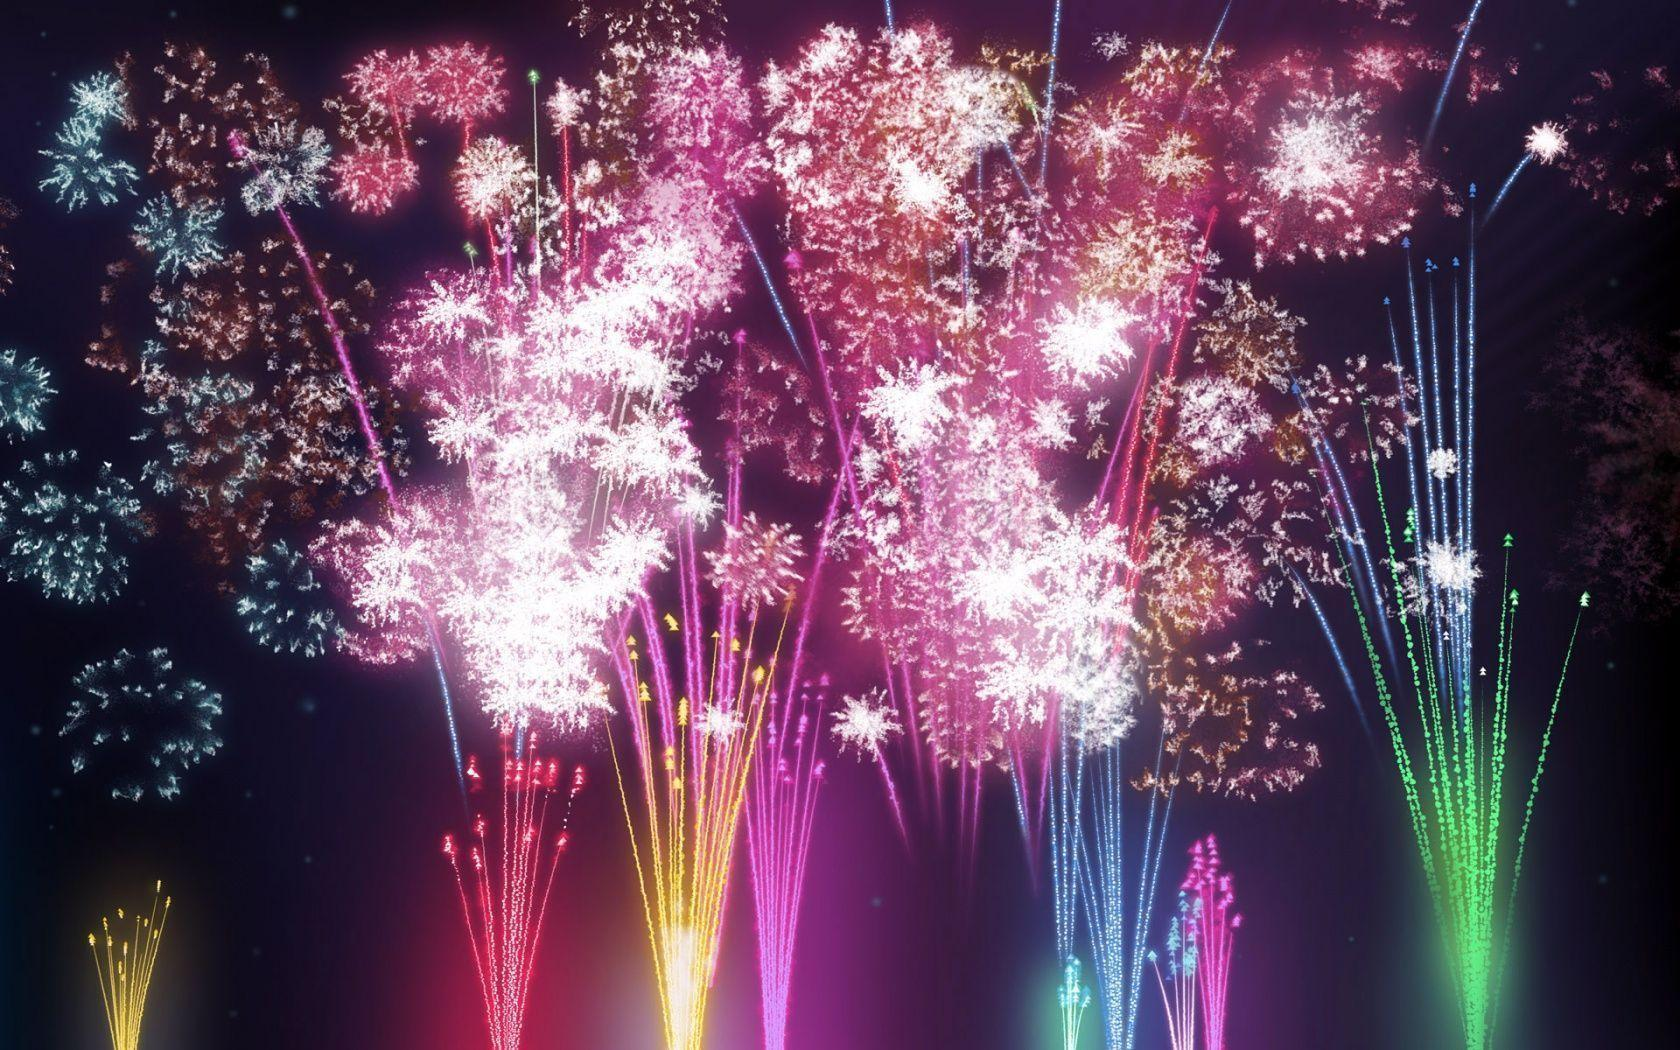 Happy New Year 2015 Animated HD Fireworks Wallpapers | Greetings